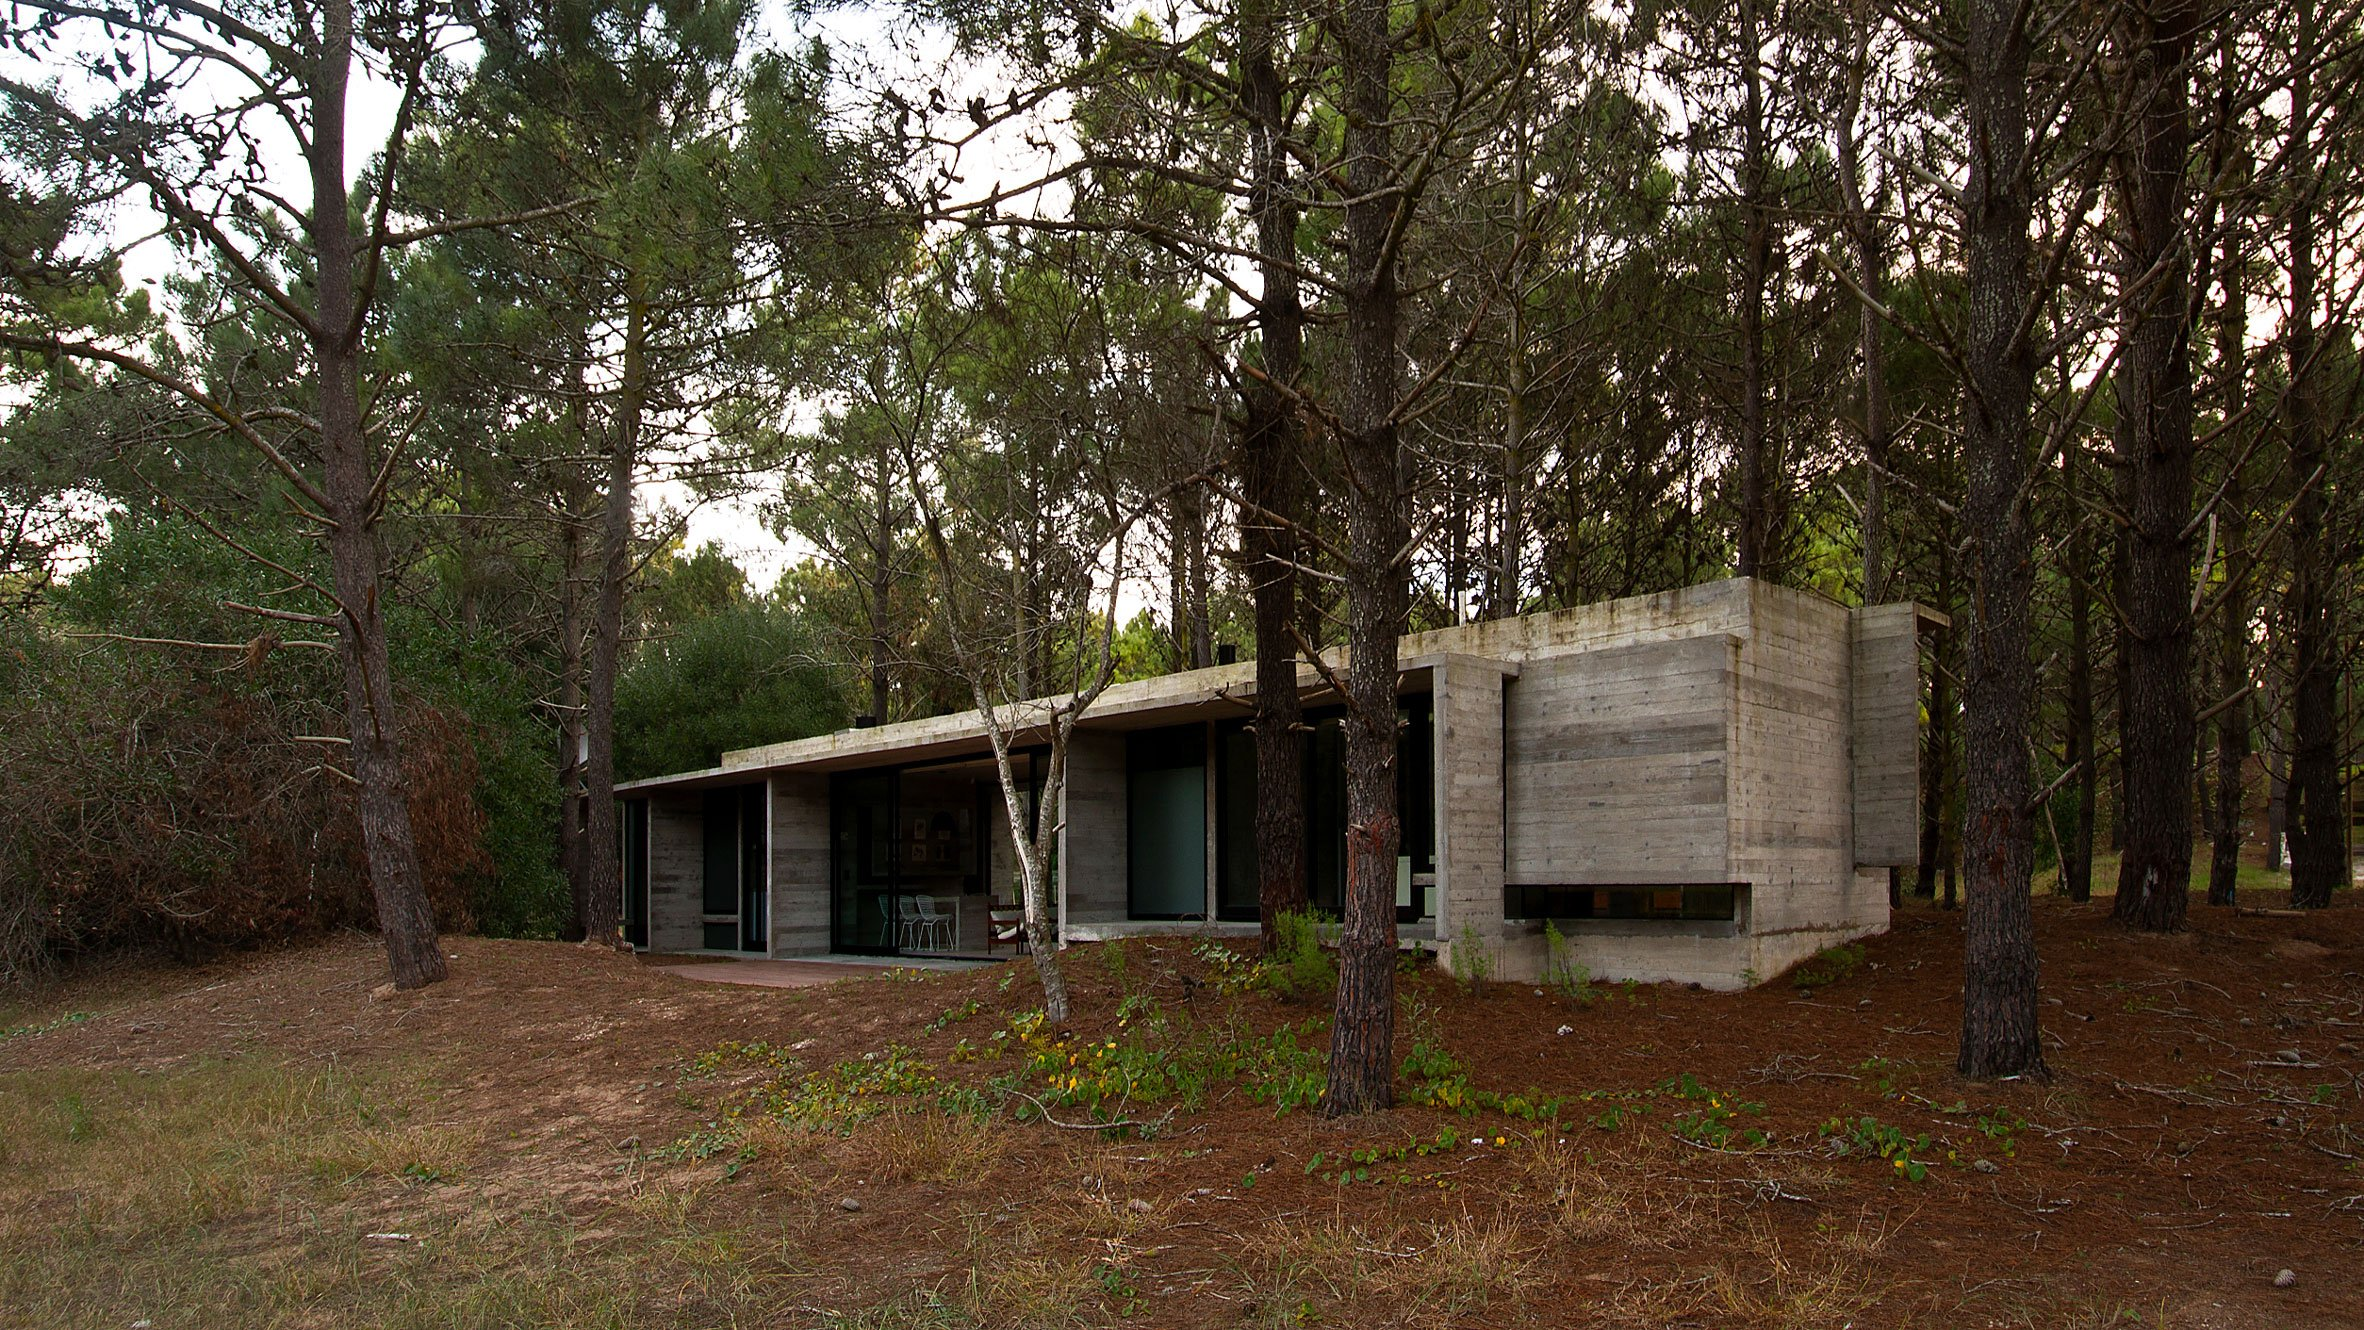 Casa SV concrete house by Luciano Kruk